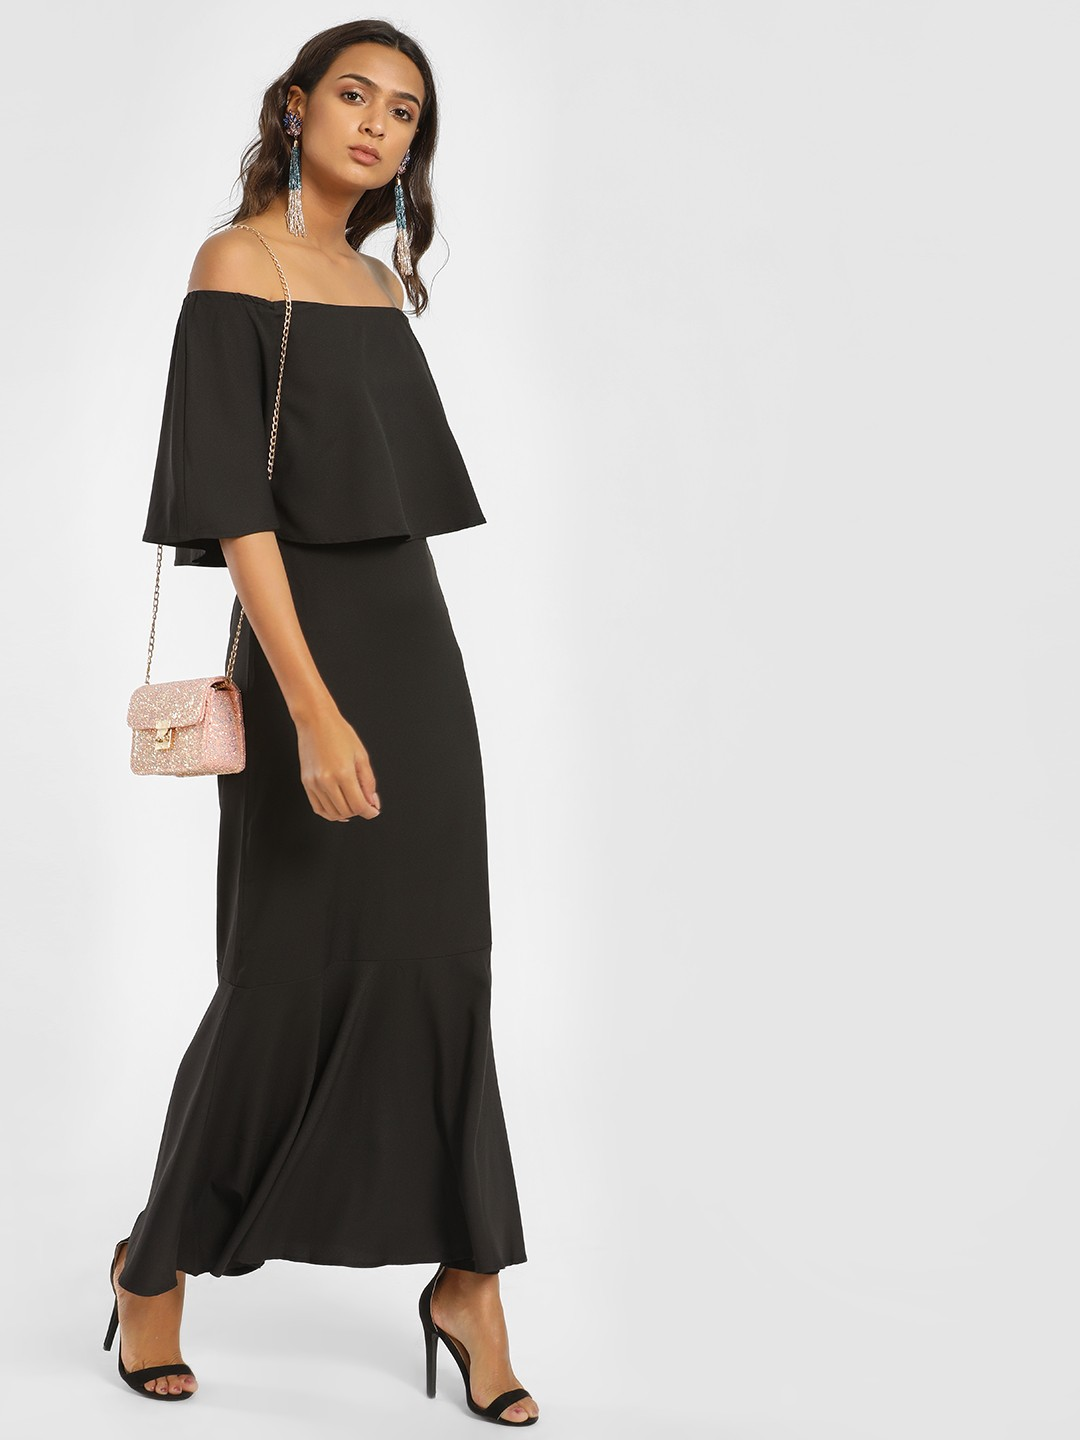 Femella Black Off Shoulder Overlay Maxi Dress 1